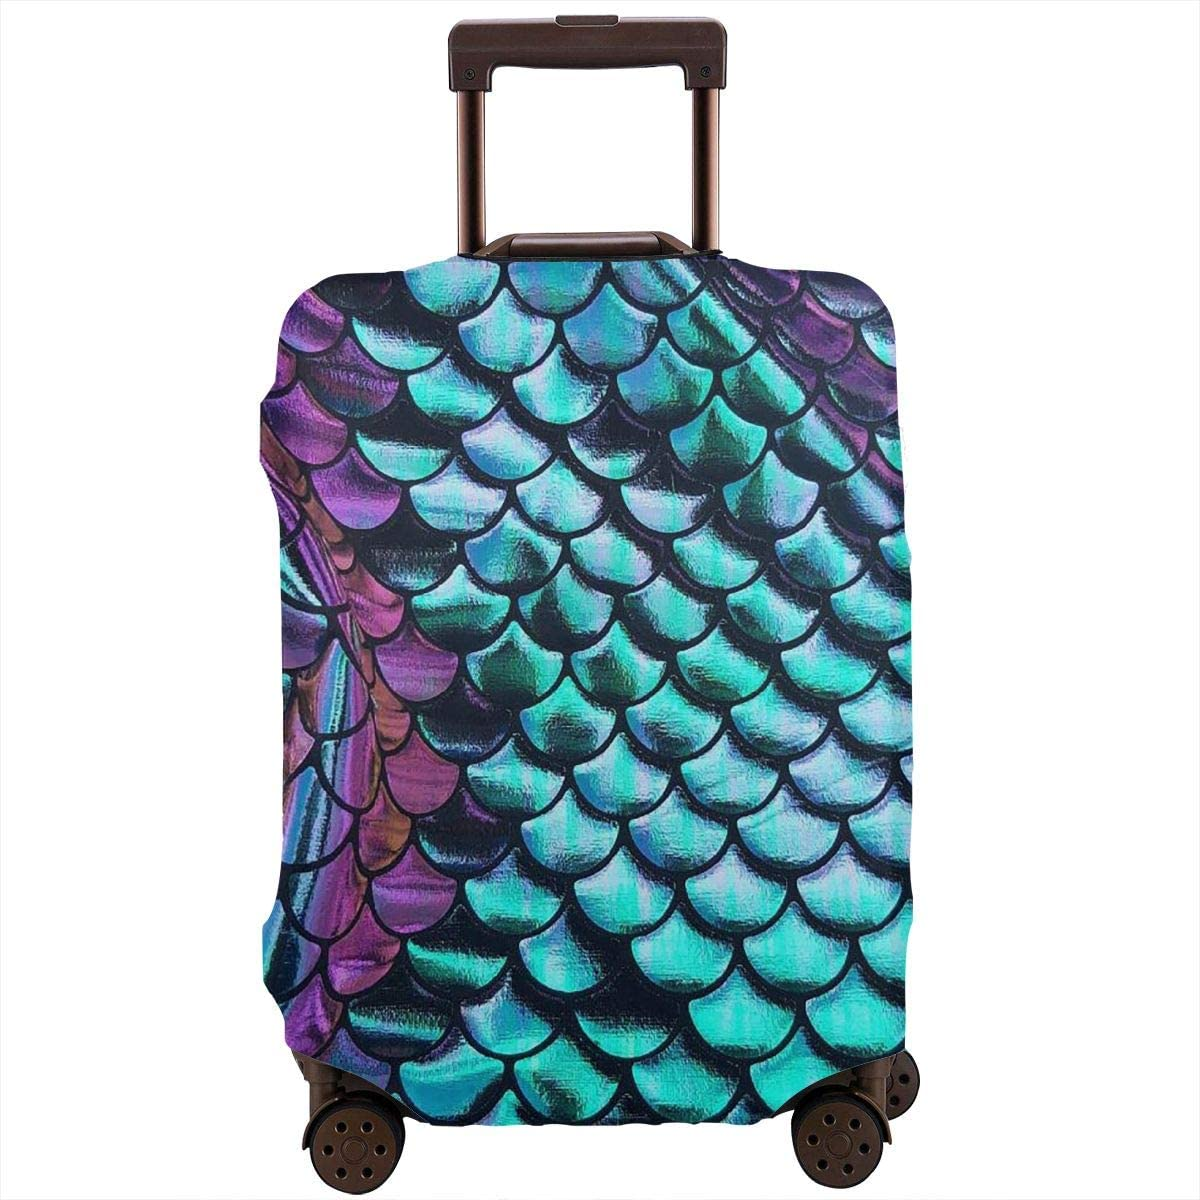 Little Mermaid Travel Luggage Cover Suitcase Protector Washable Zipper Baggage Cover